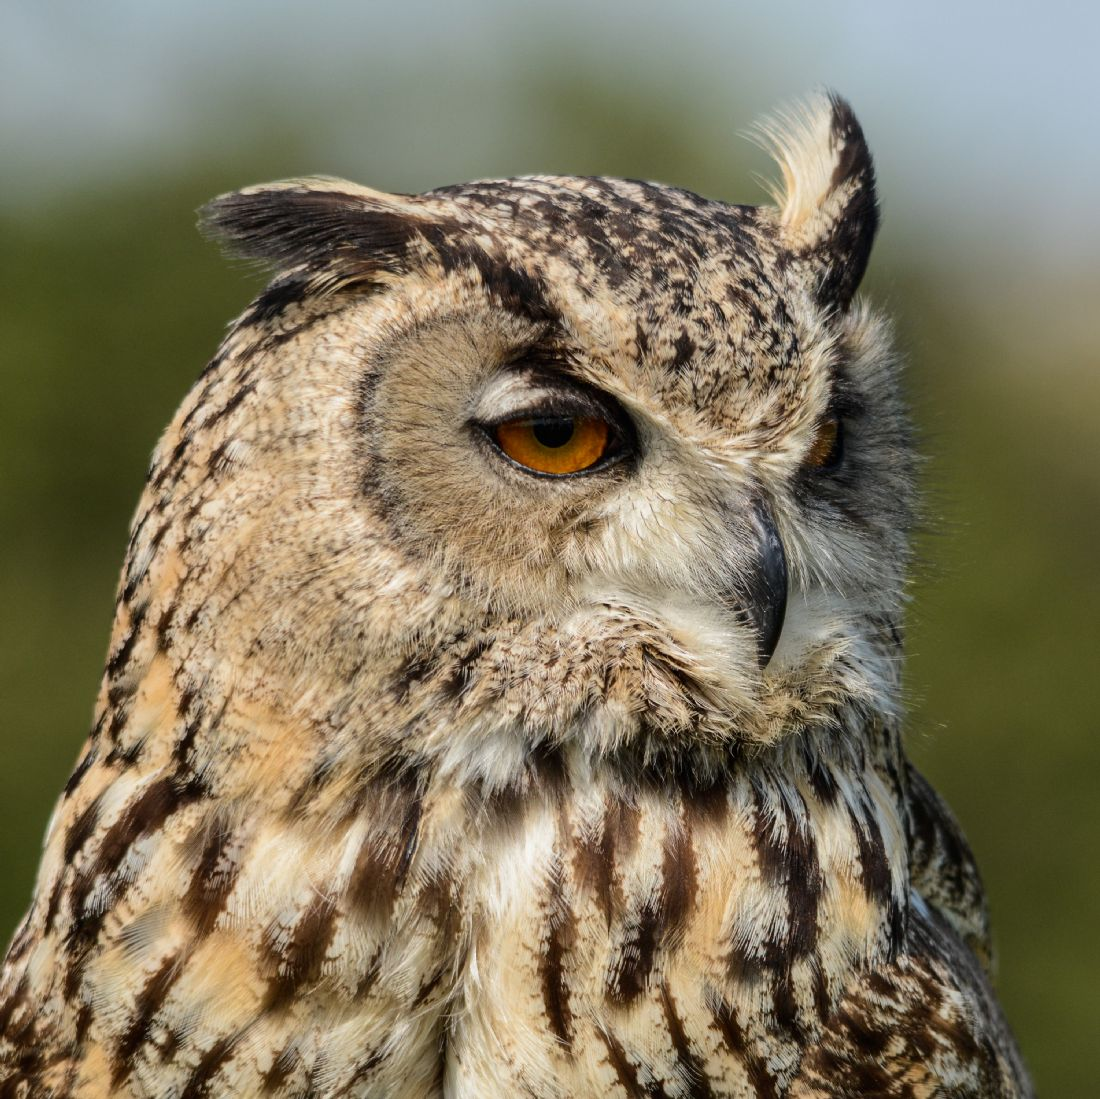 Mike Carroll | Turkmenian Eagle Owl Close-up